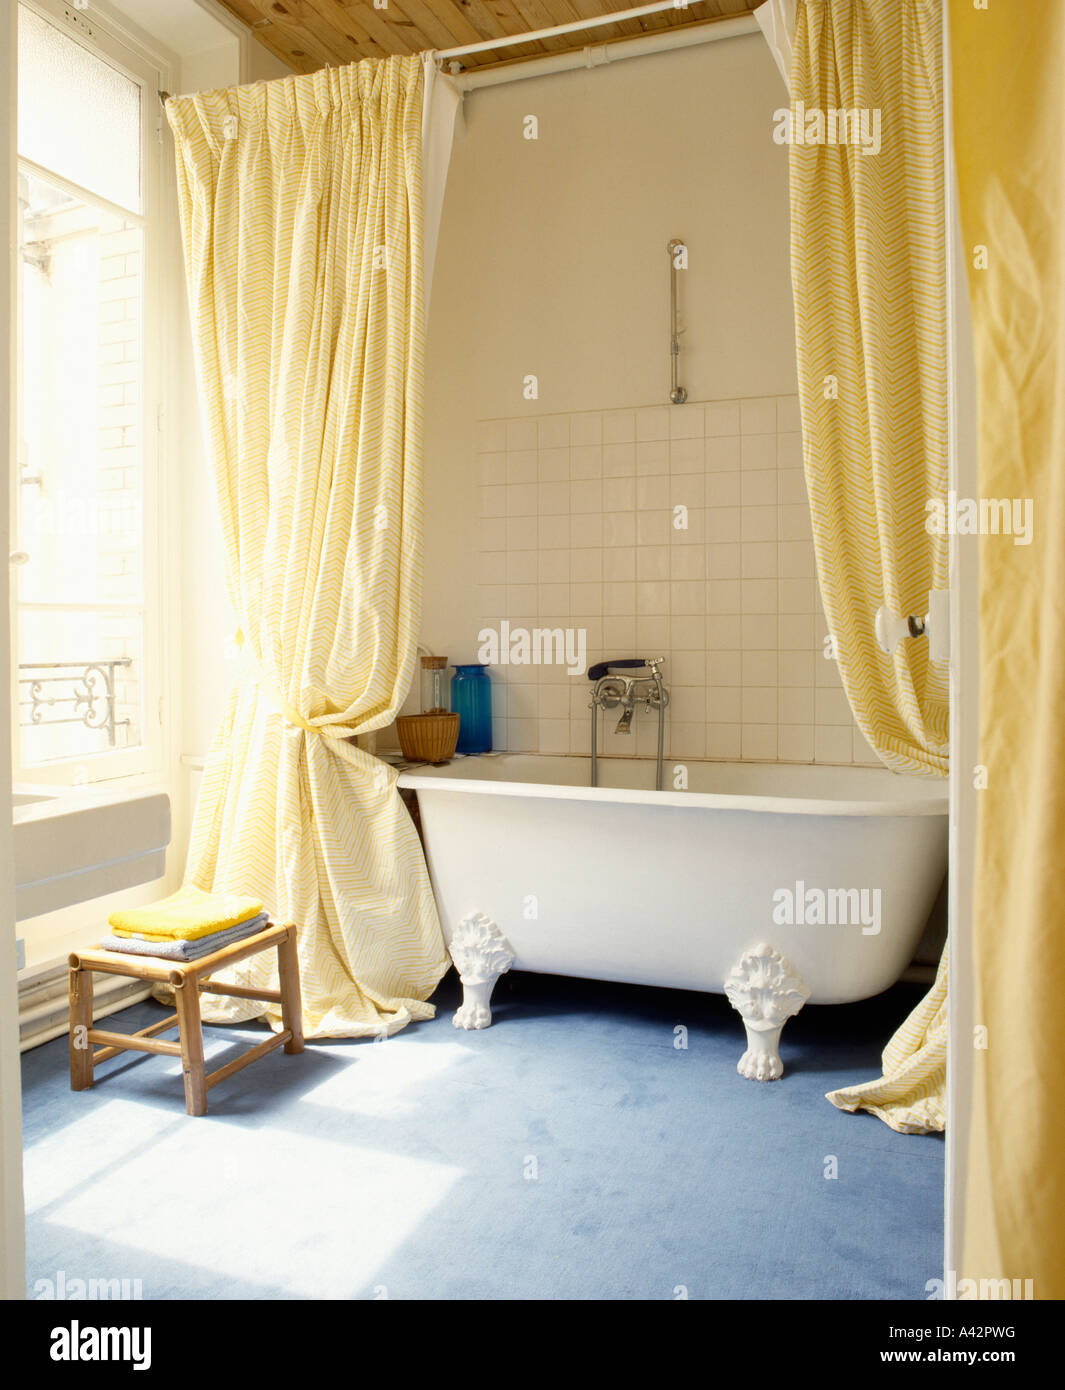 Bathroom With Freestanding White Clawfoot Bath And Yellow